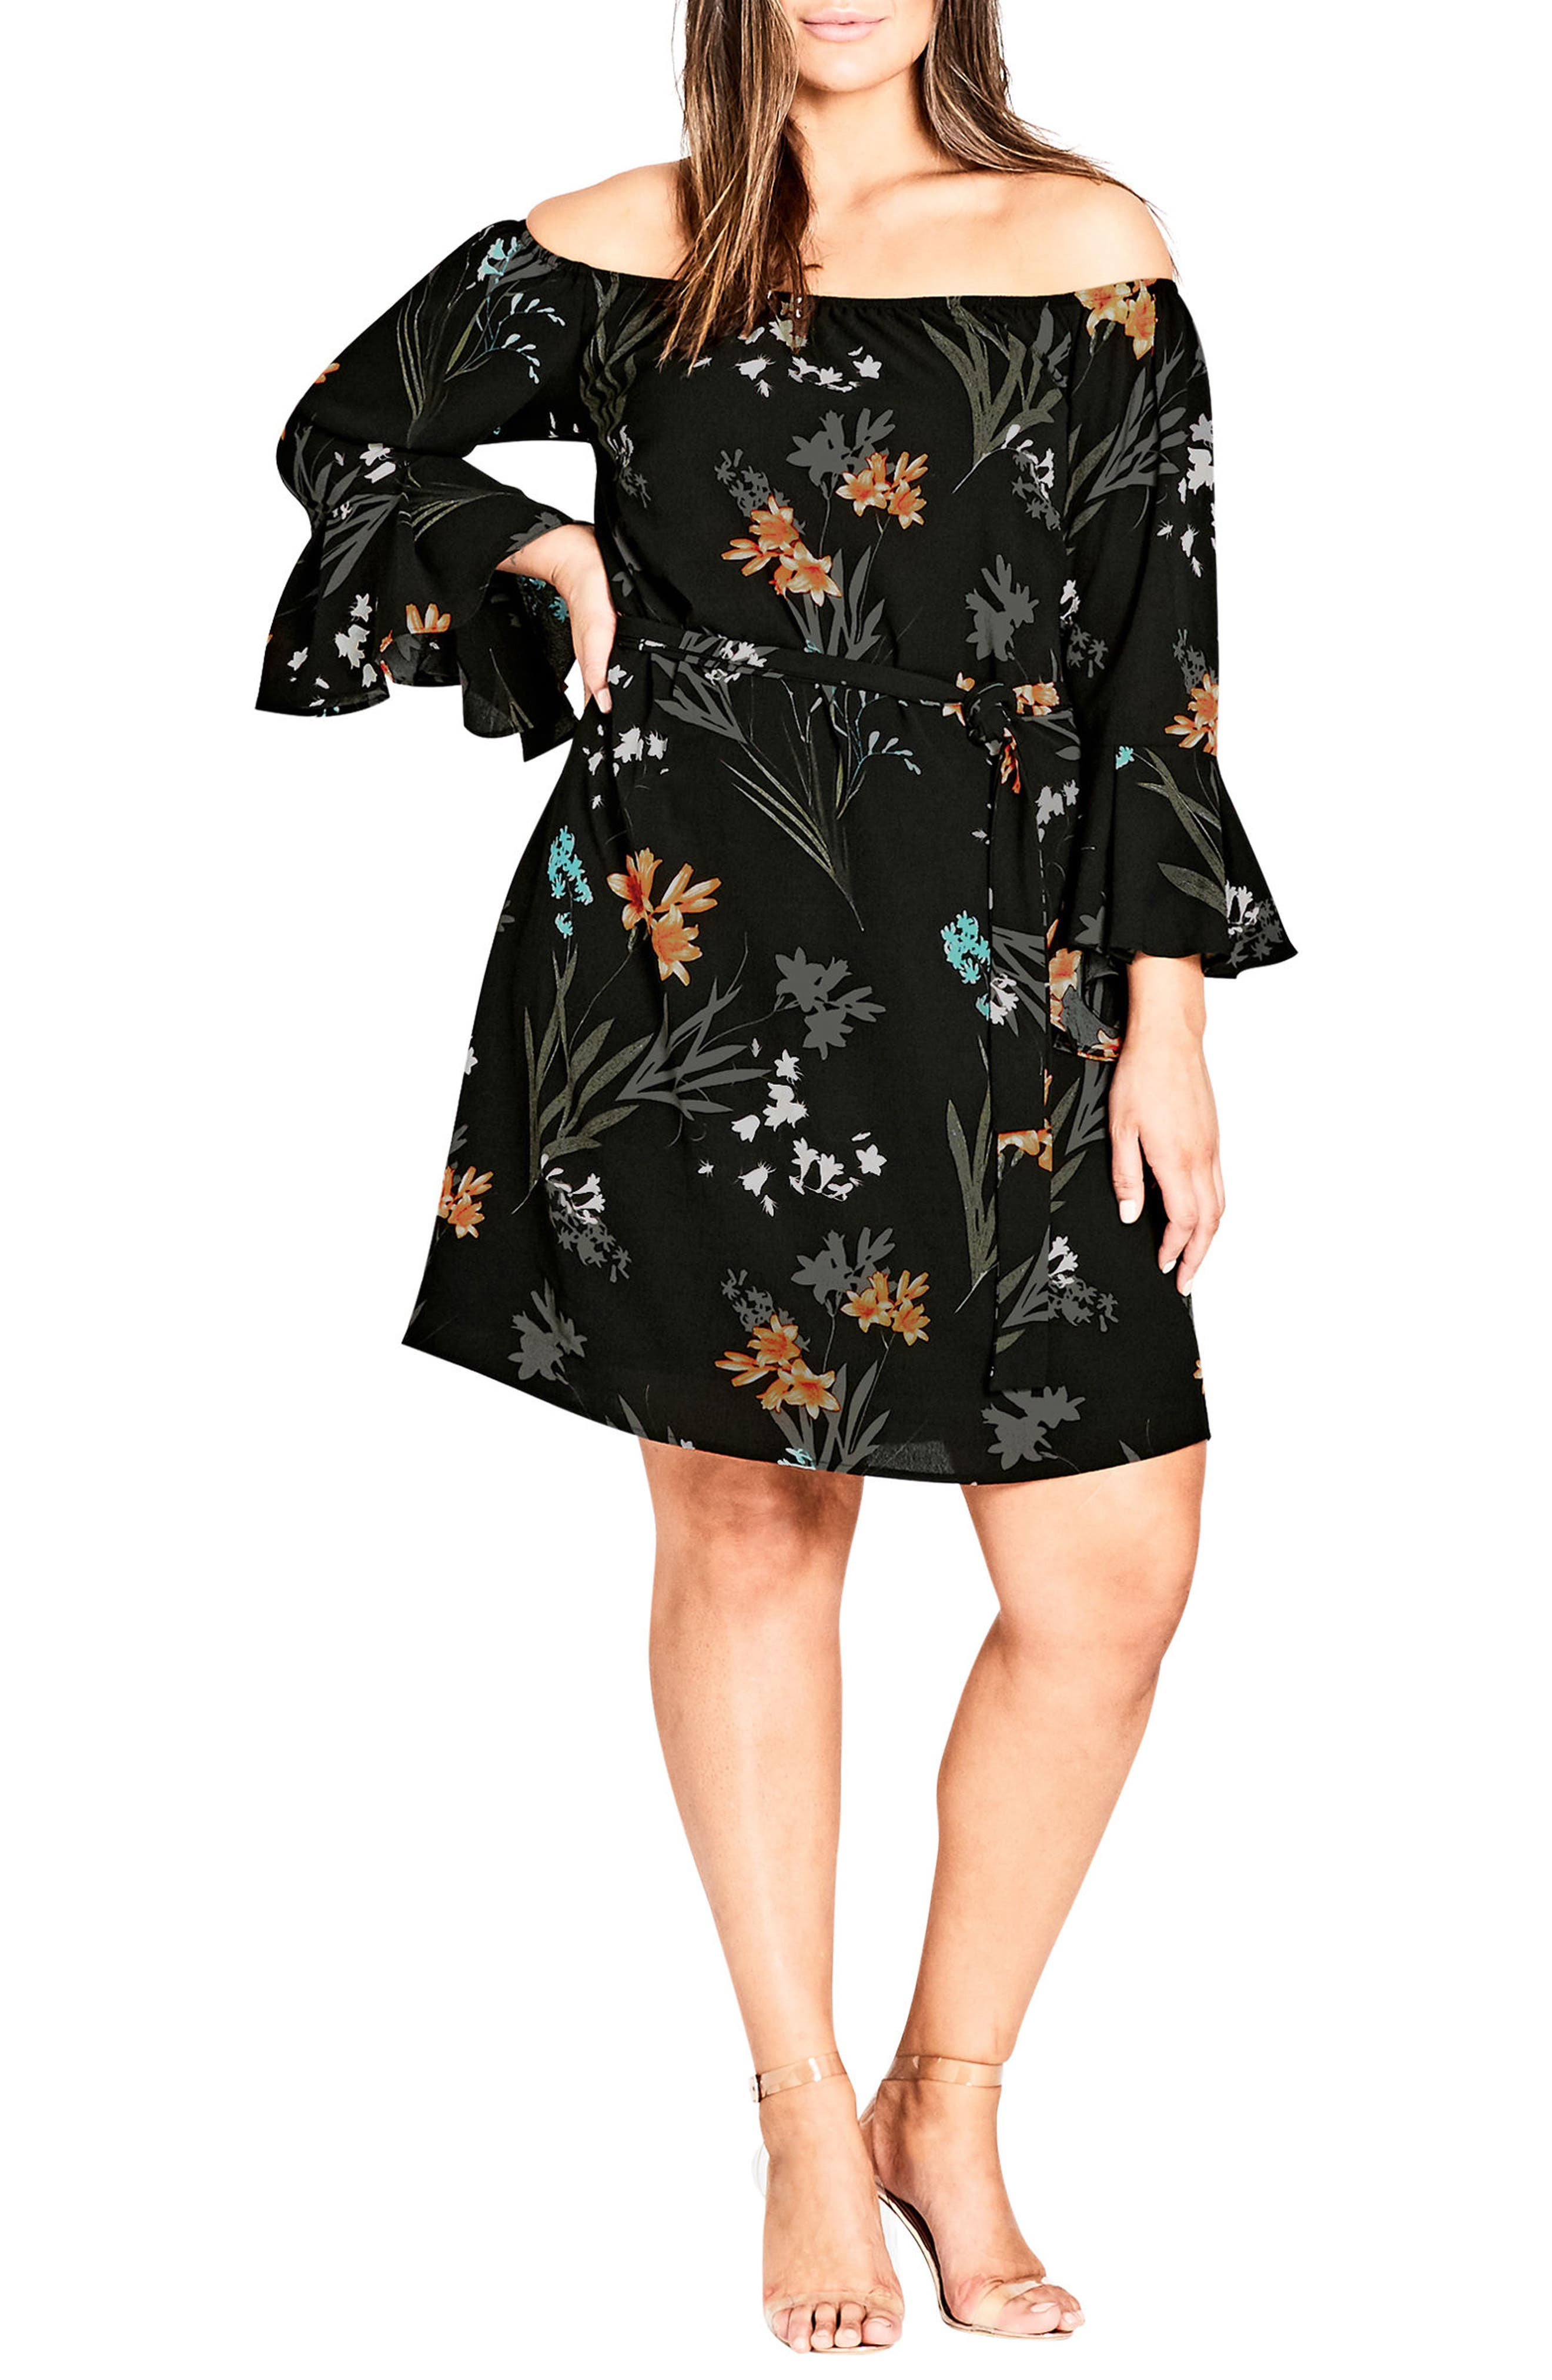 Wild Floral Off the Shoulder Tunic Dress,                             Main thumbnail 1, color,                             Wild Floral